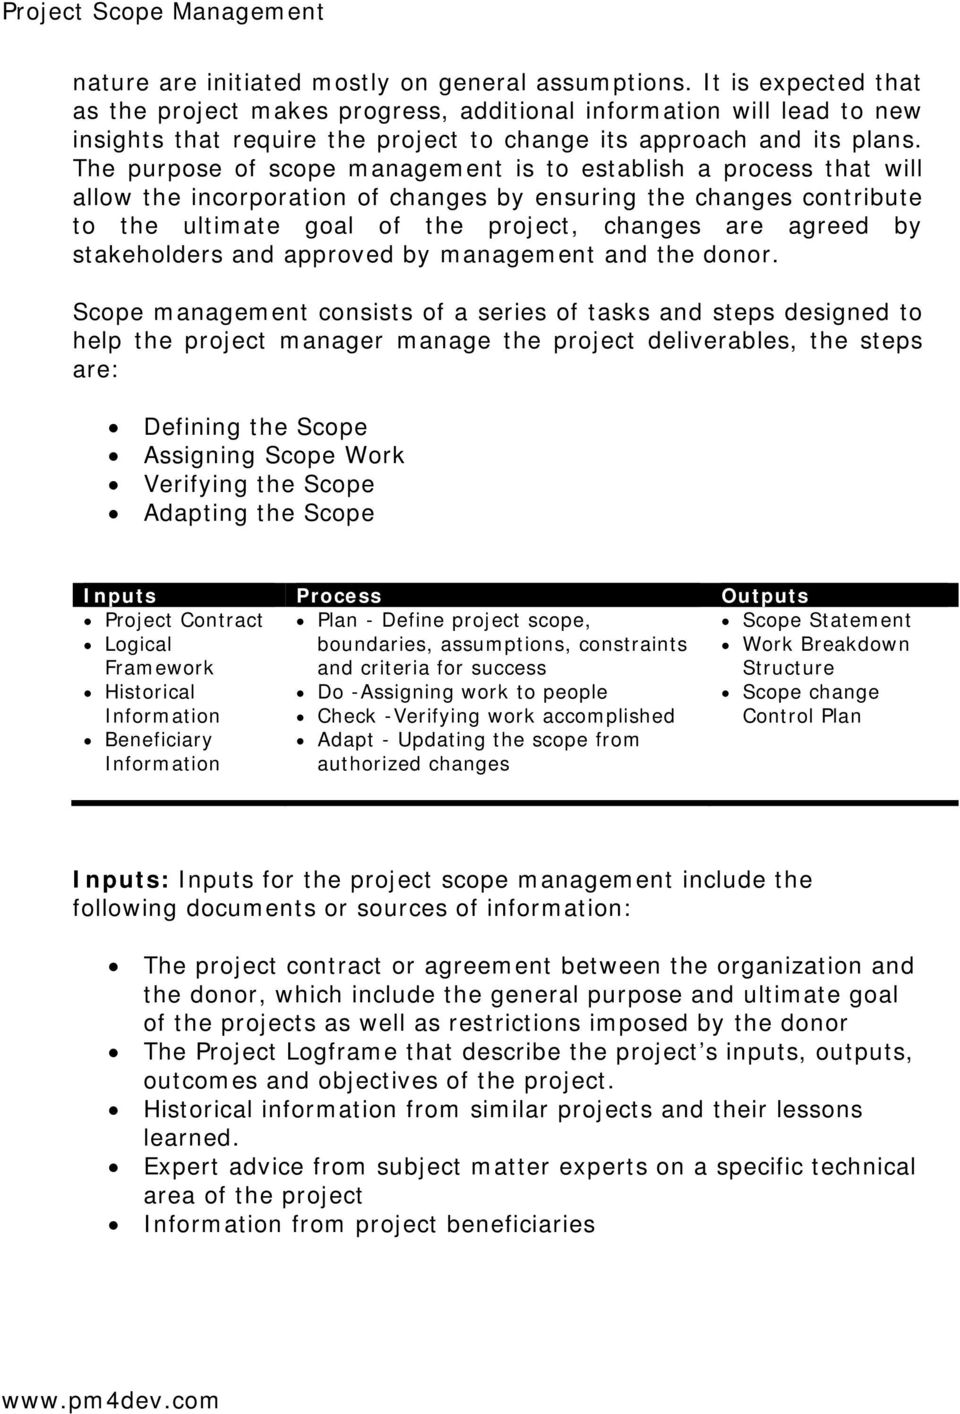 The purpose of scope management is to establish a process that will allow the incorporation of changes by ensuring the changes contribute to the ultimate goal of the project, changes are agreed by